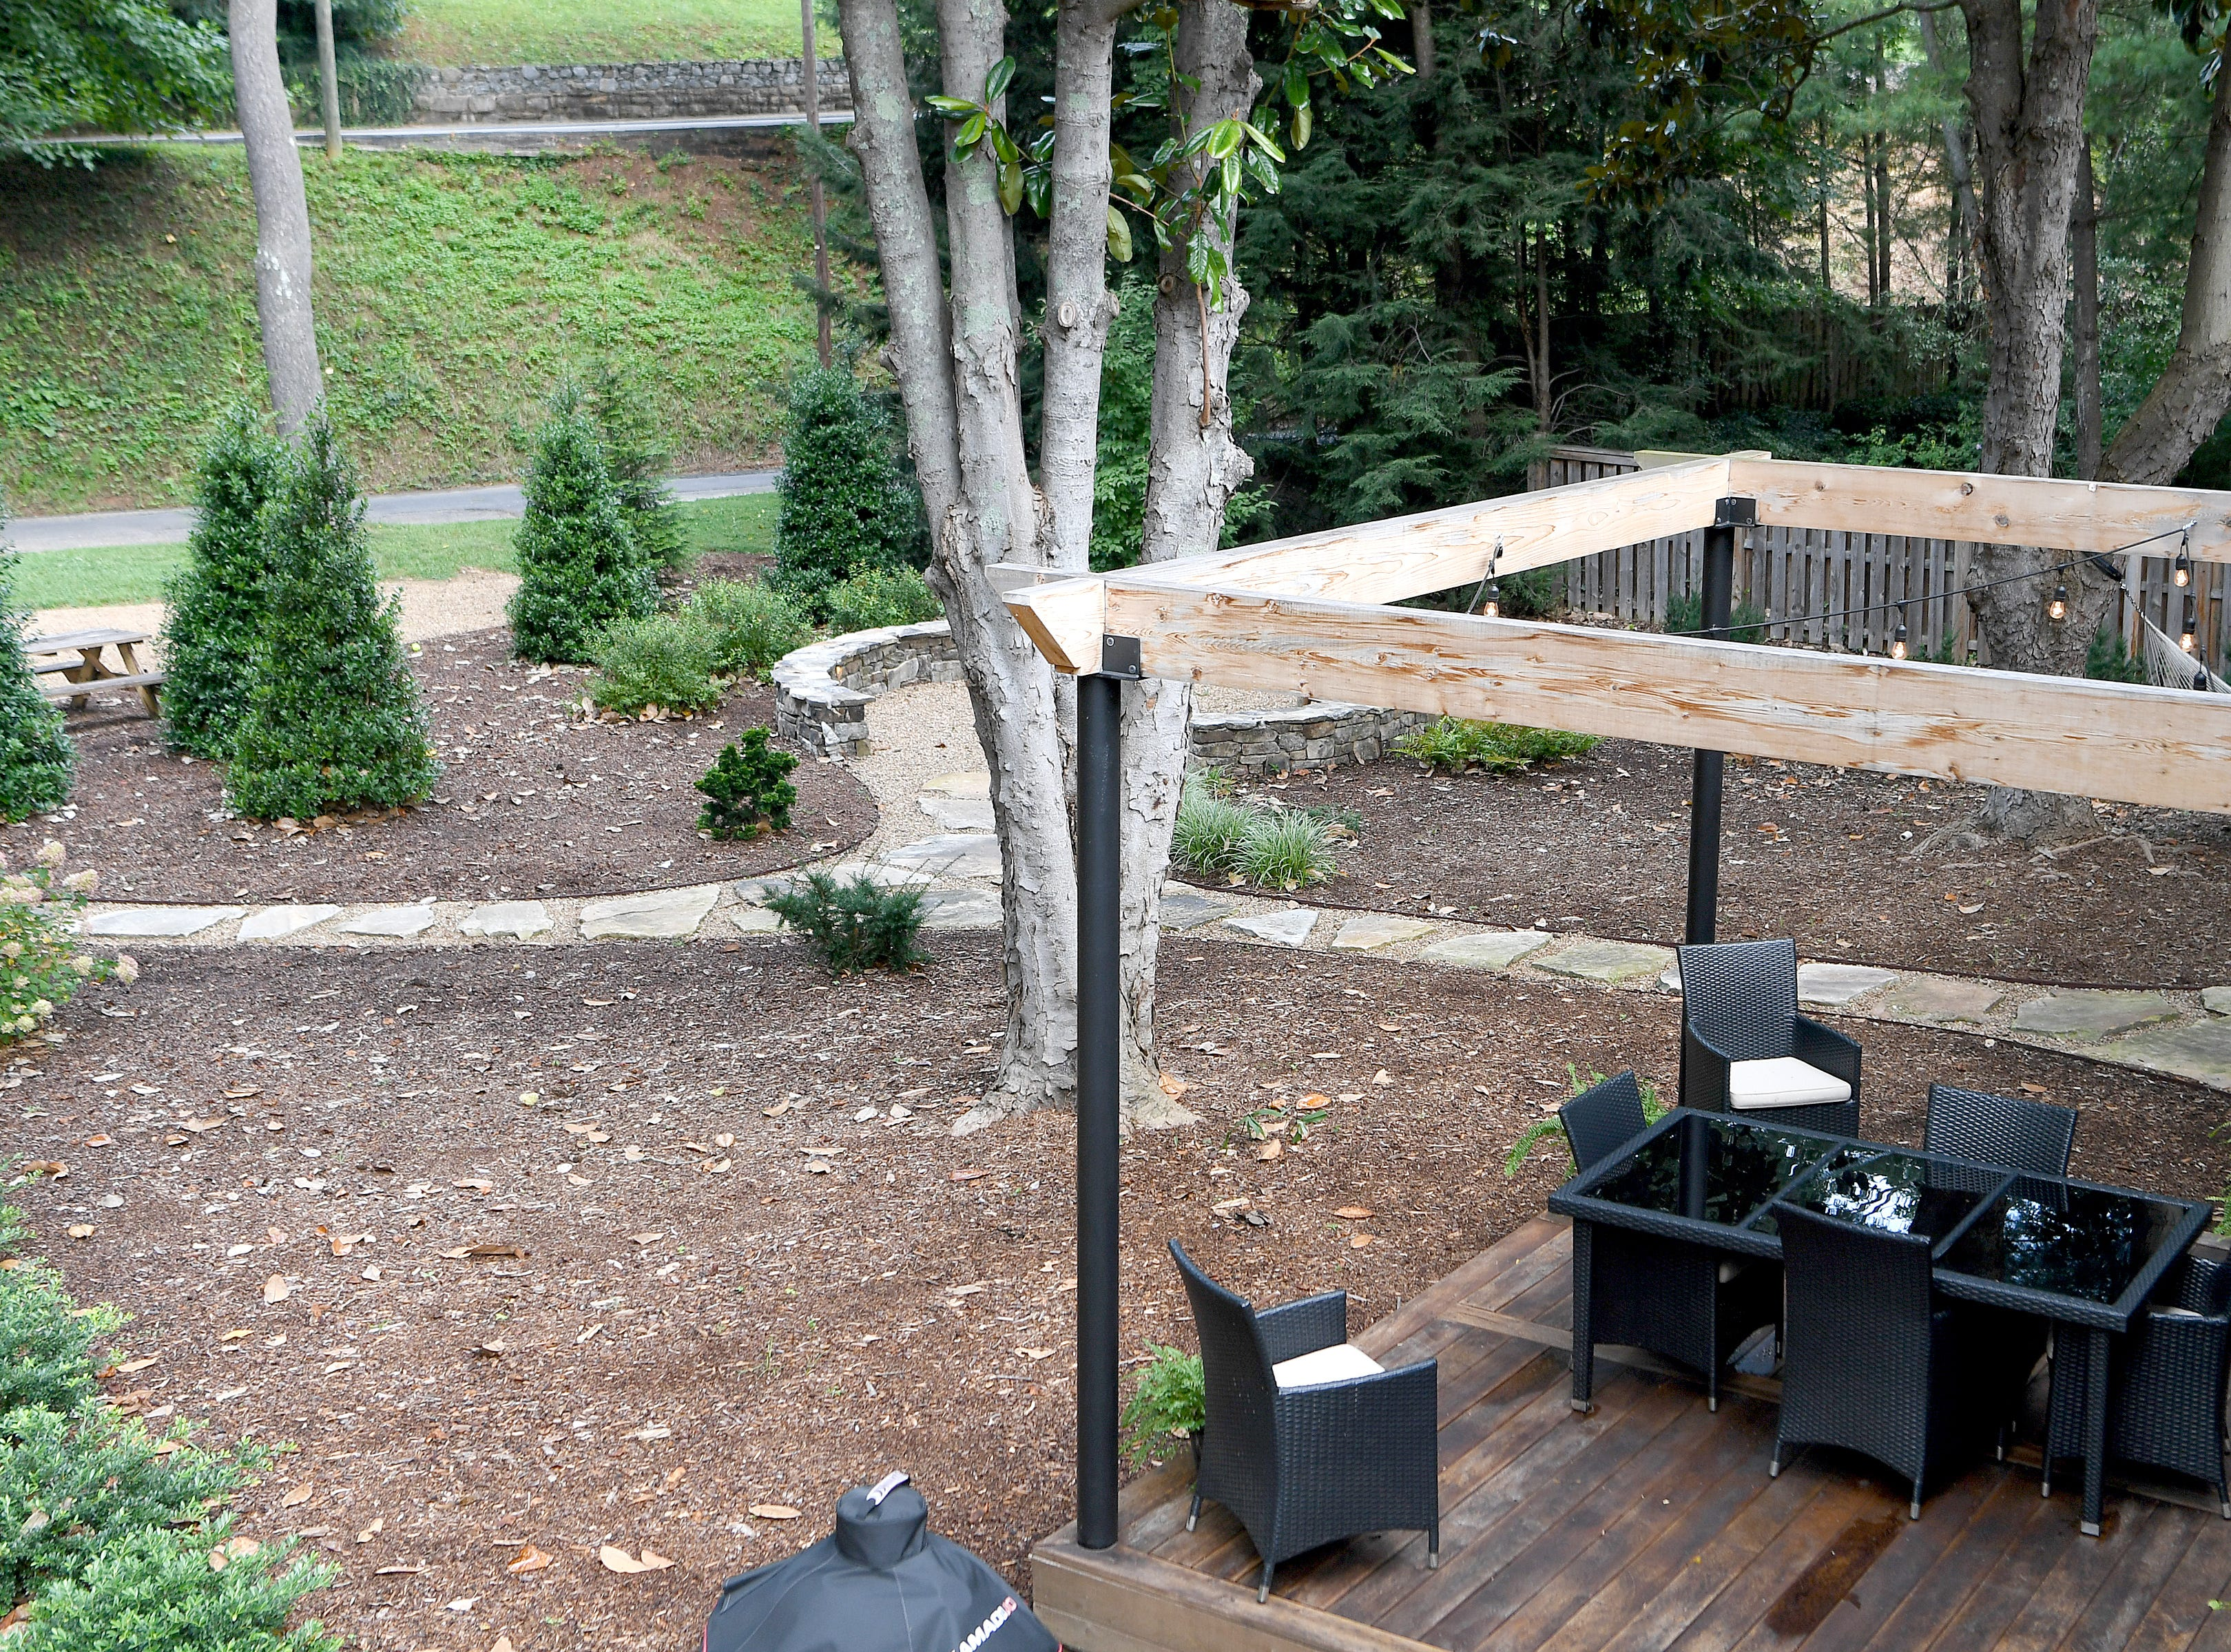 Annie Lundahl and Mary Ann Myers have made a home of what was once an apartment building in North Asheville. Their yard was once nothing but impermeable pavement and now is home to trees and beautiful landscaping as well as outdoor entertaining areas.